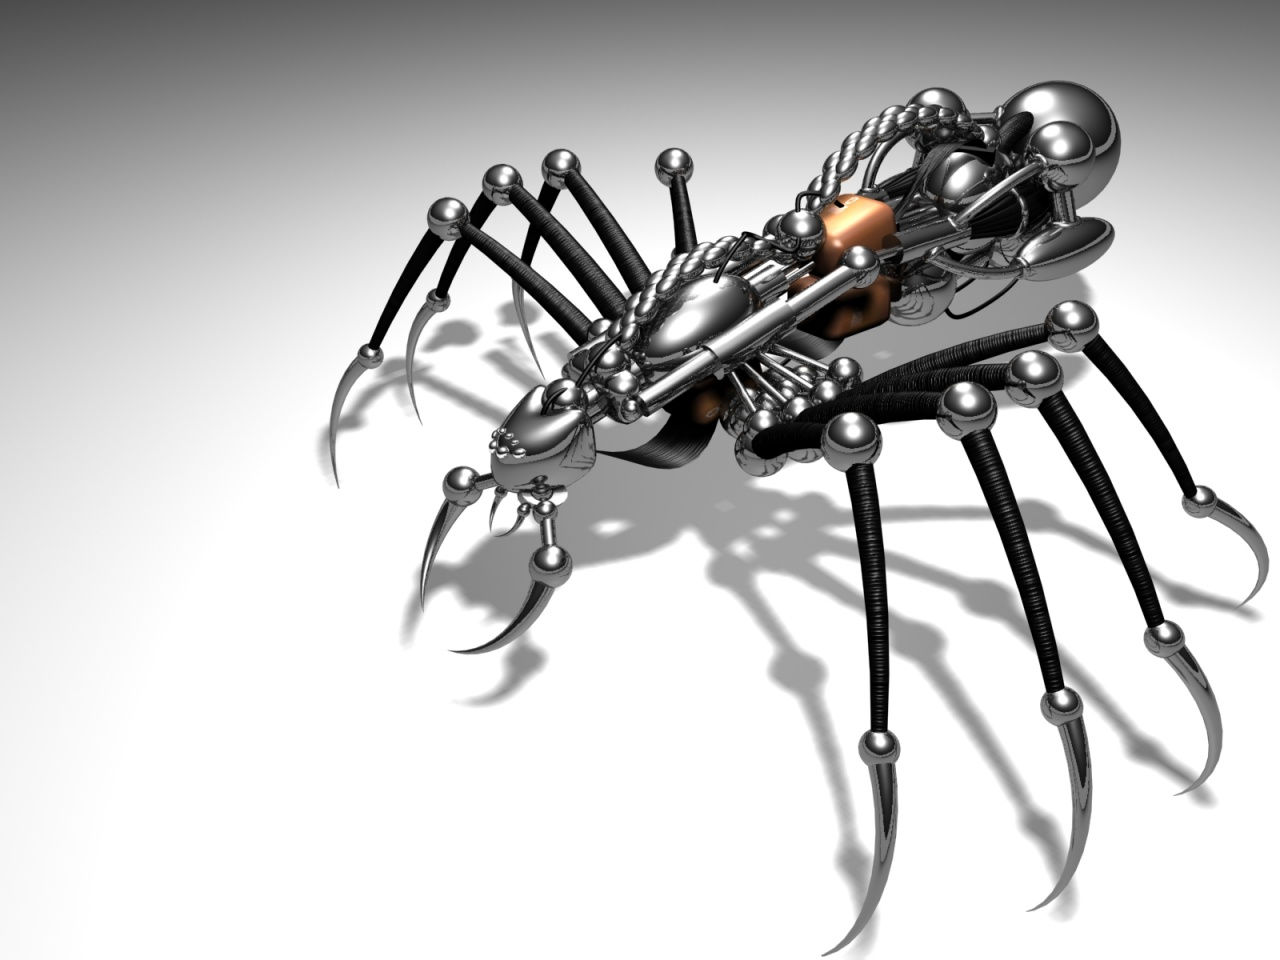 Cyber spider wallpapers 4291 1280x1024